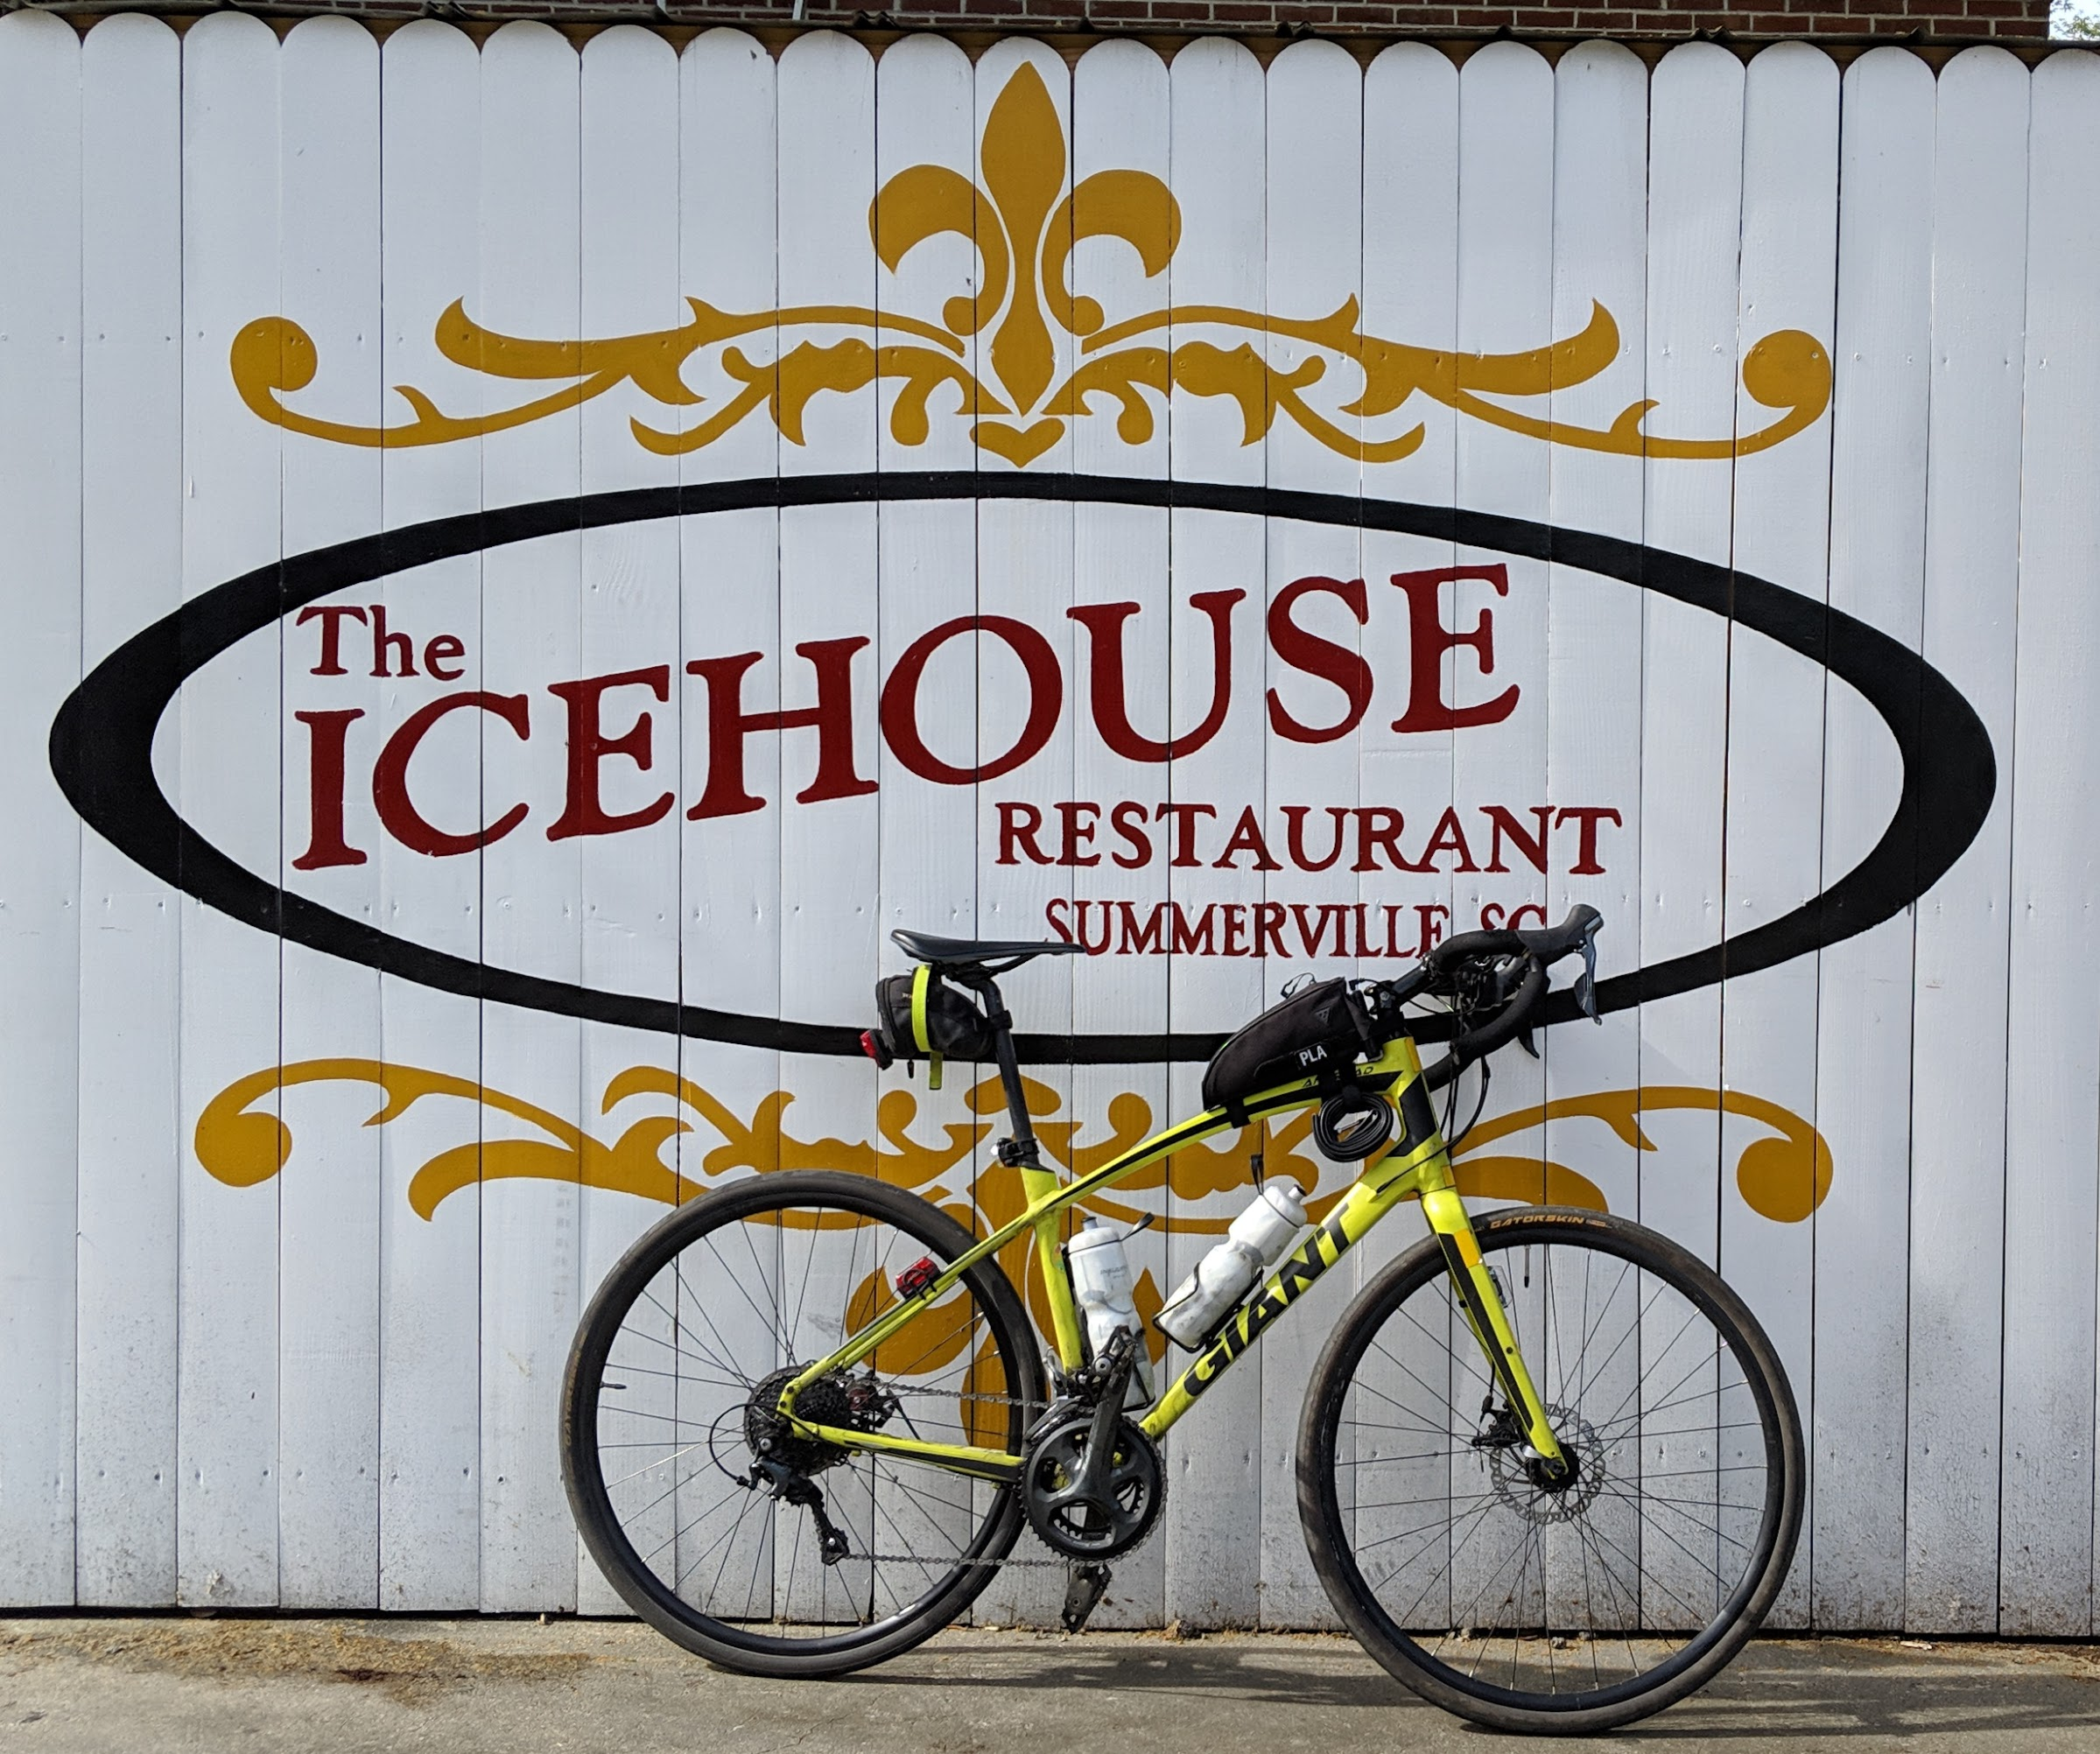 bike in front of Ice House sign